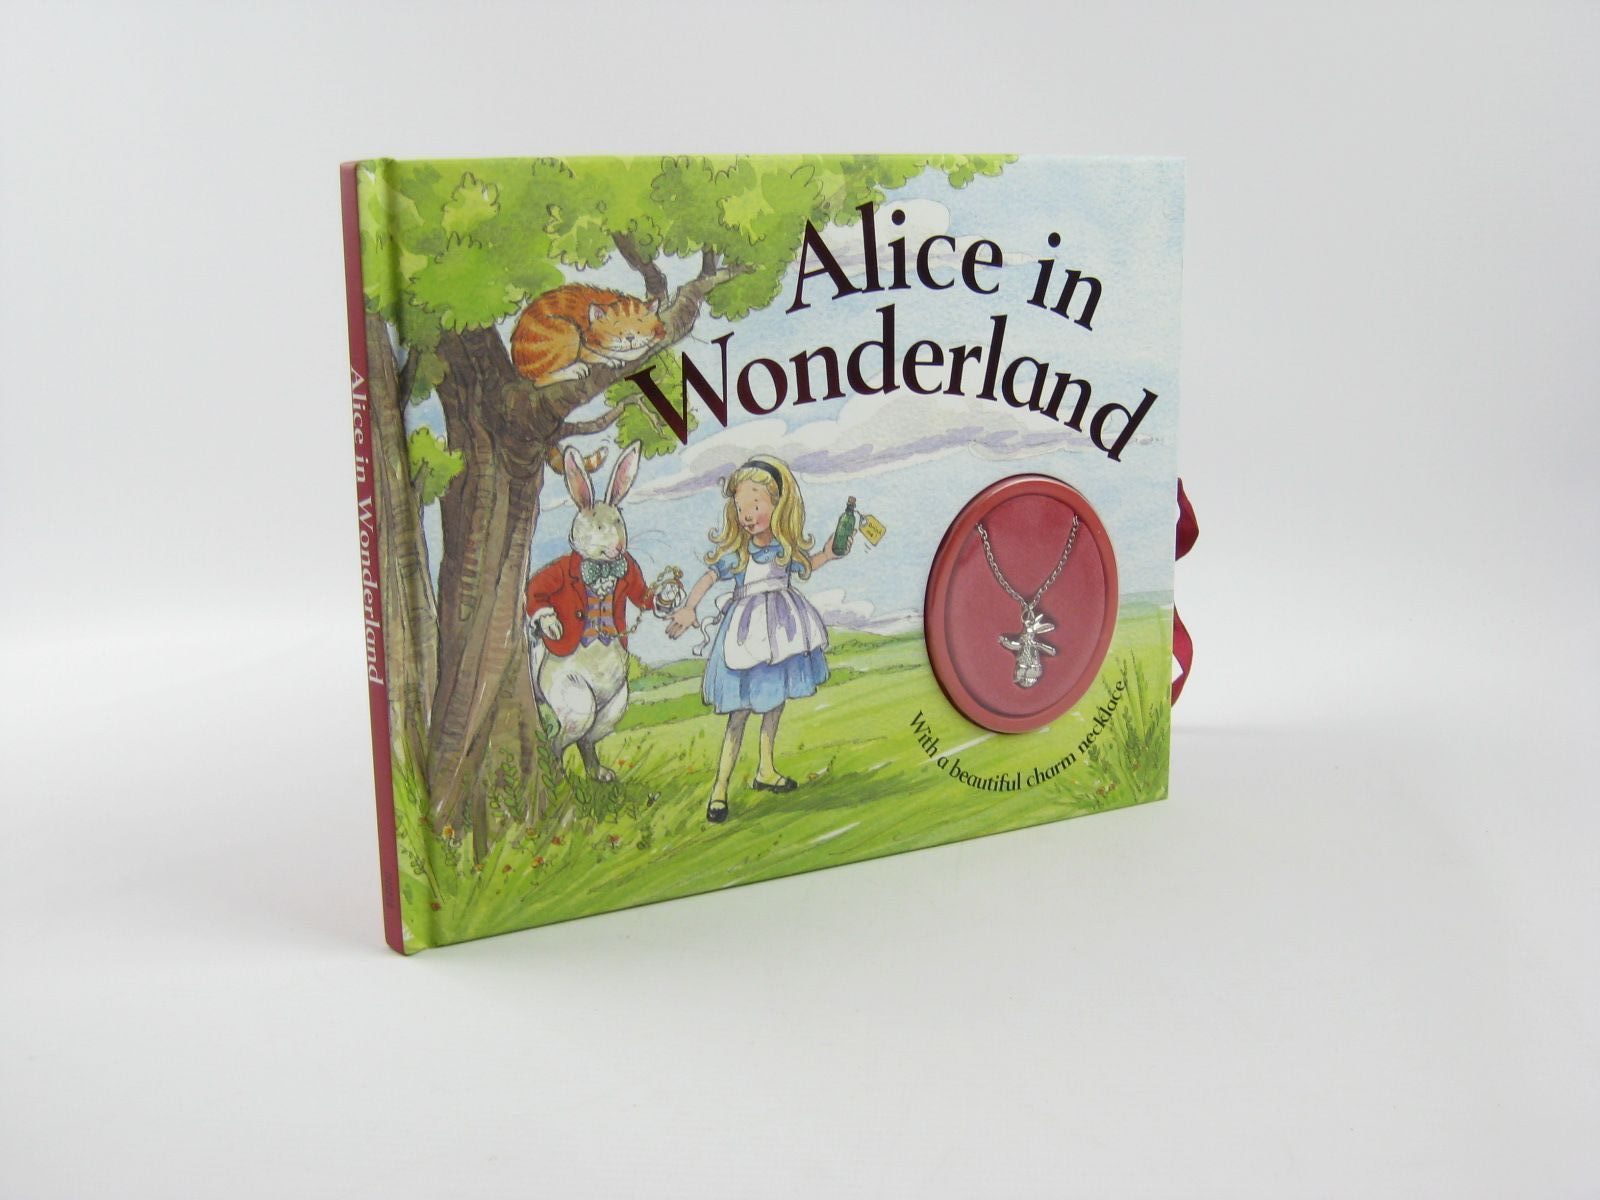 Photo of ALICE IN WONDERLAND WITH A BEAUTIFUL CHARM NECKLACE